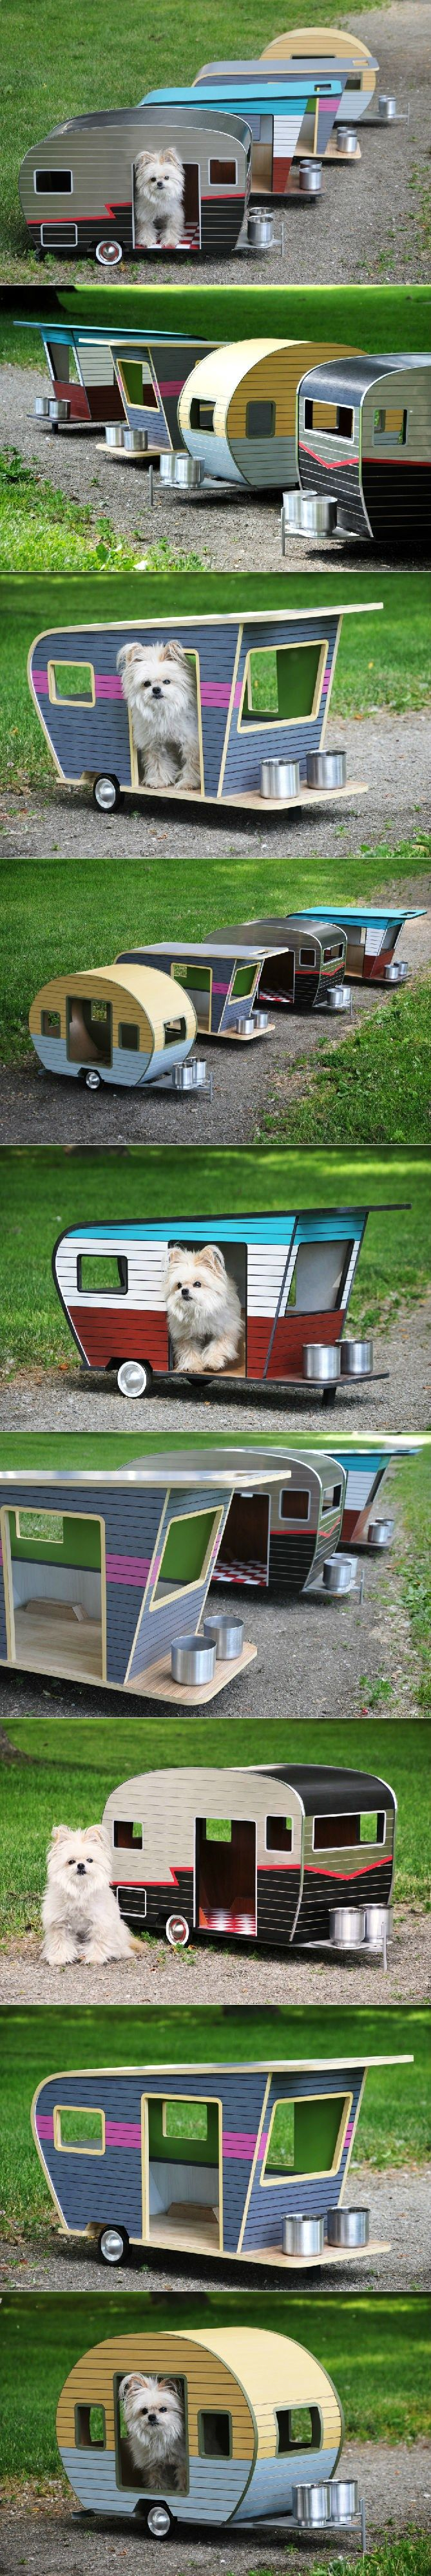 Dog Bed - Cool Dog House Upgrade: Instantly-Endearing Pet Trailer Designs. Unique dog-sized trailers made from environmentally-friendly materials, including recyclable aluminum, plywood and plastic. Pet trailer can even have a lighted interior, wireless s